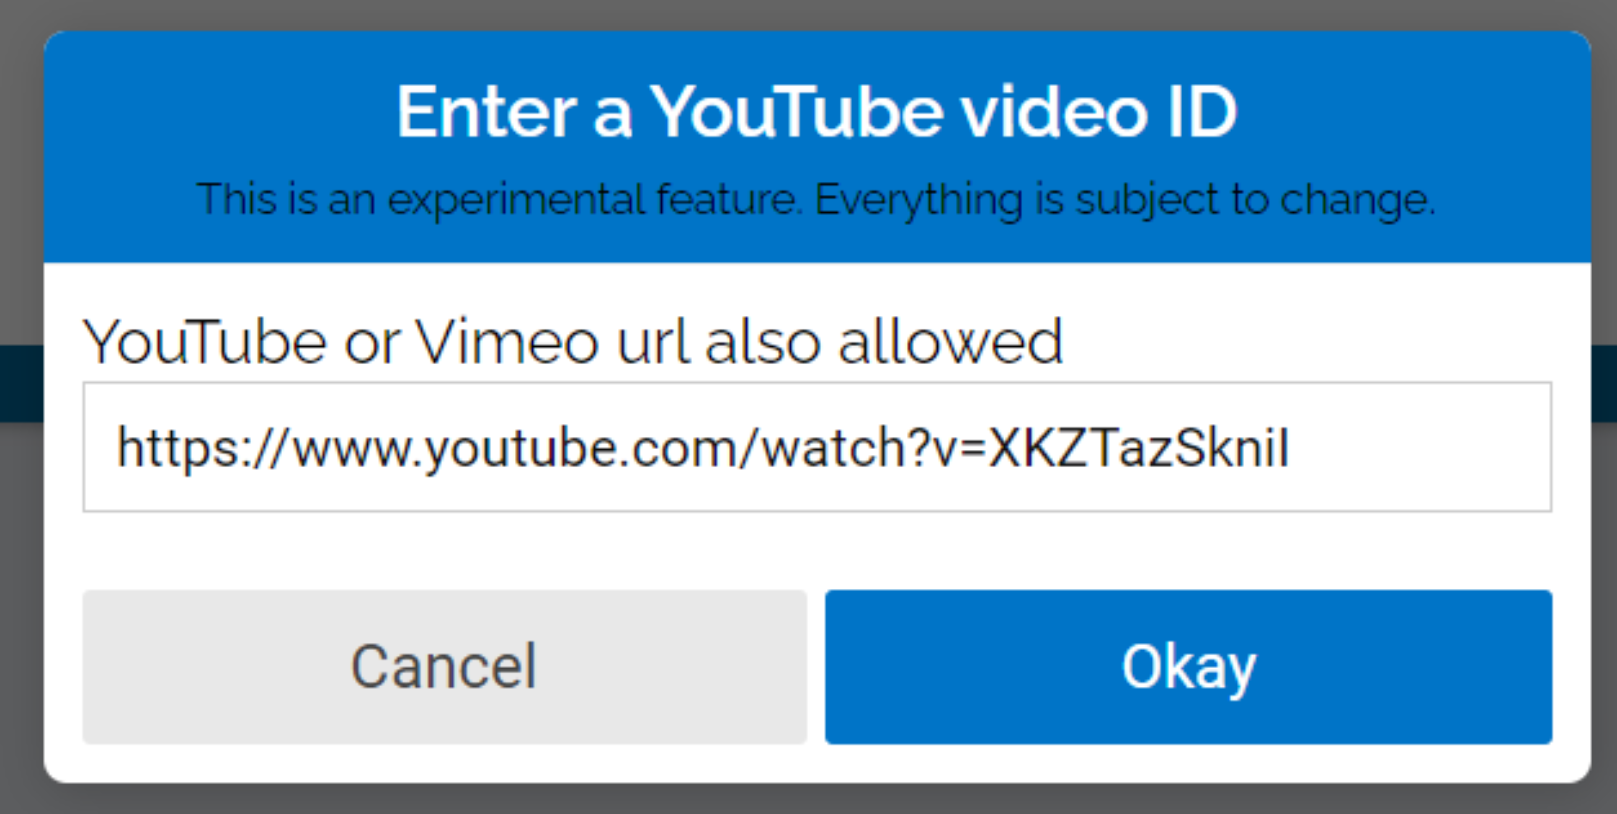 """Paste the YouTube or Vimeo url into the text box and click """"okay""""."""